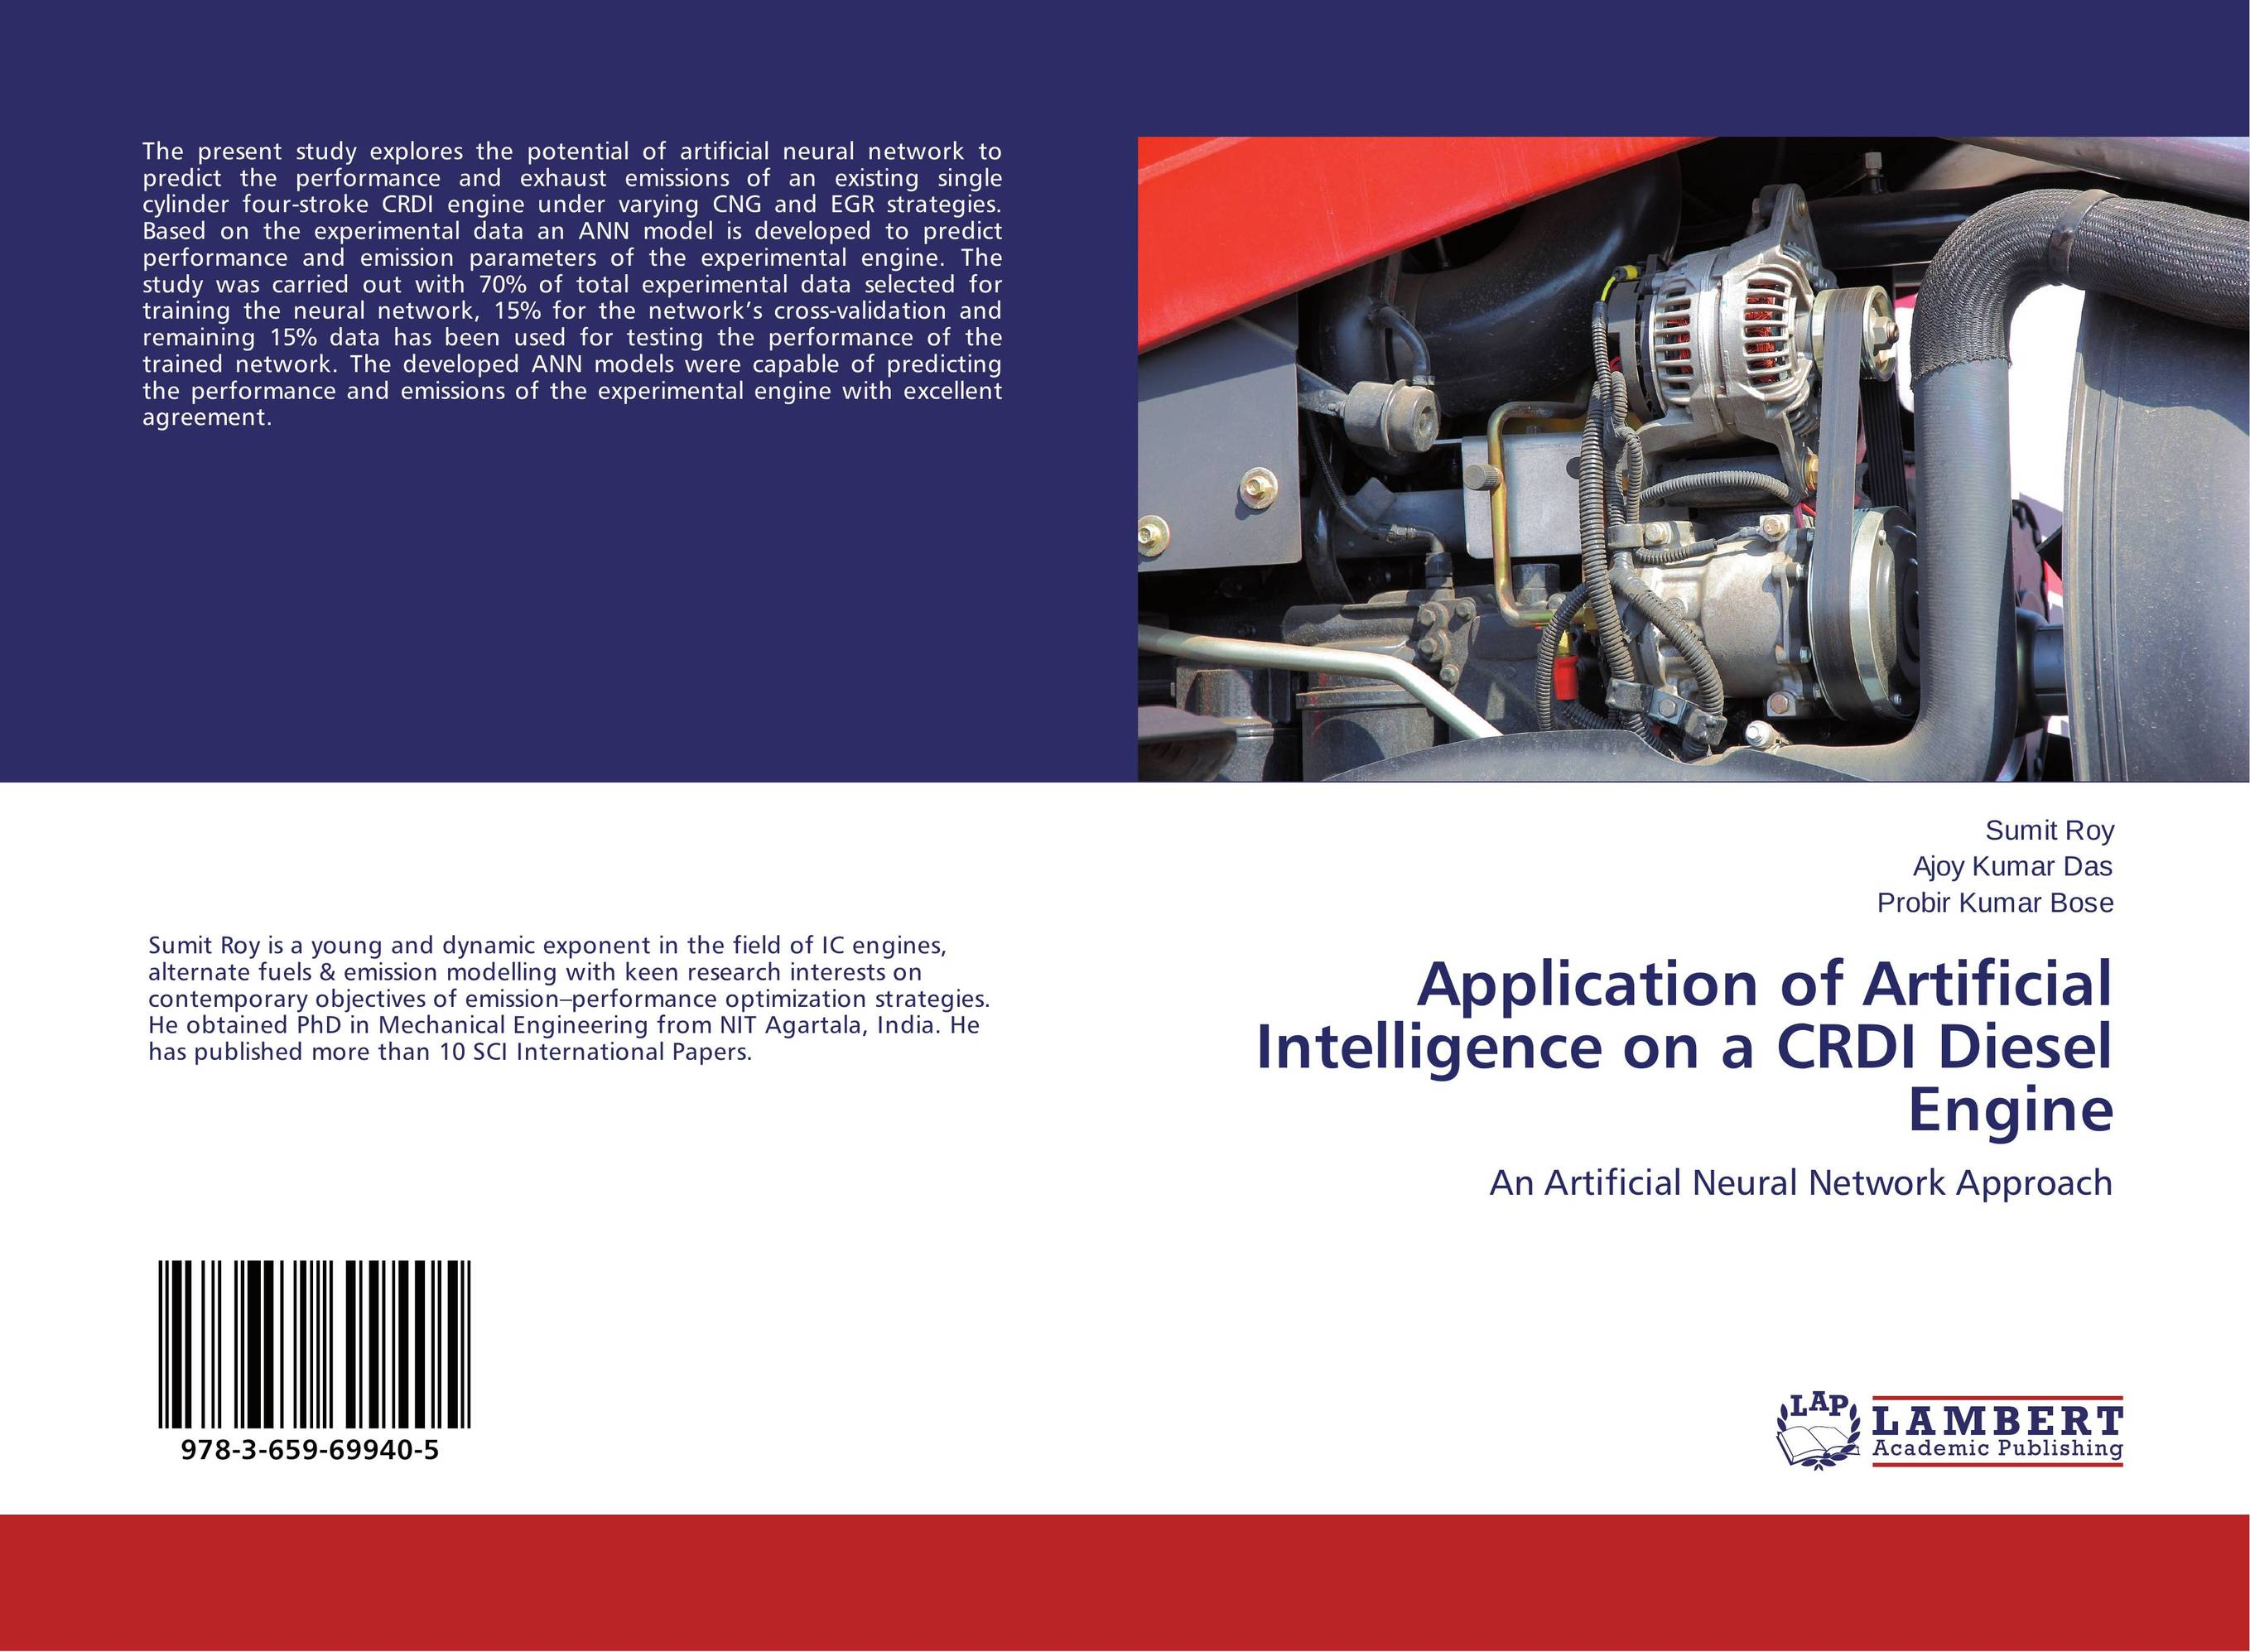 Application of Artificial Intelligence on a CRDI Diesel Engine predicting performance